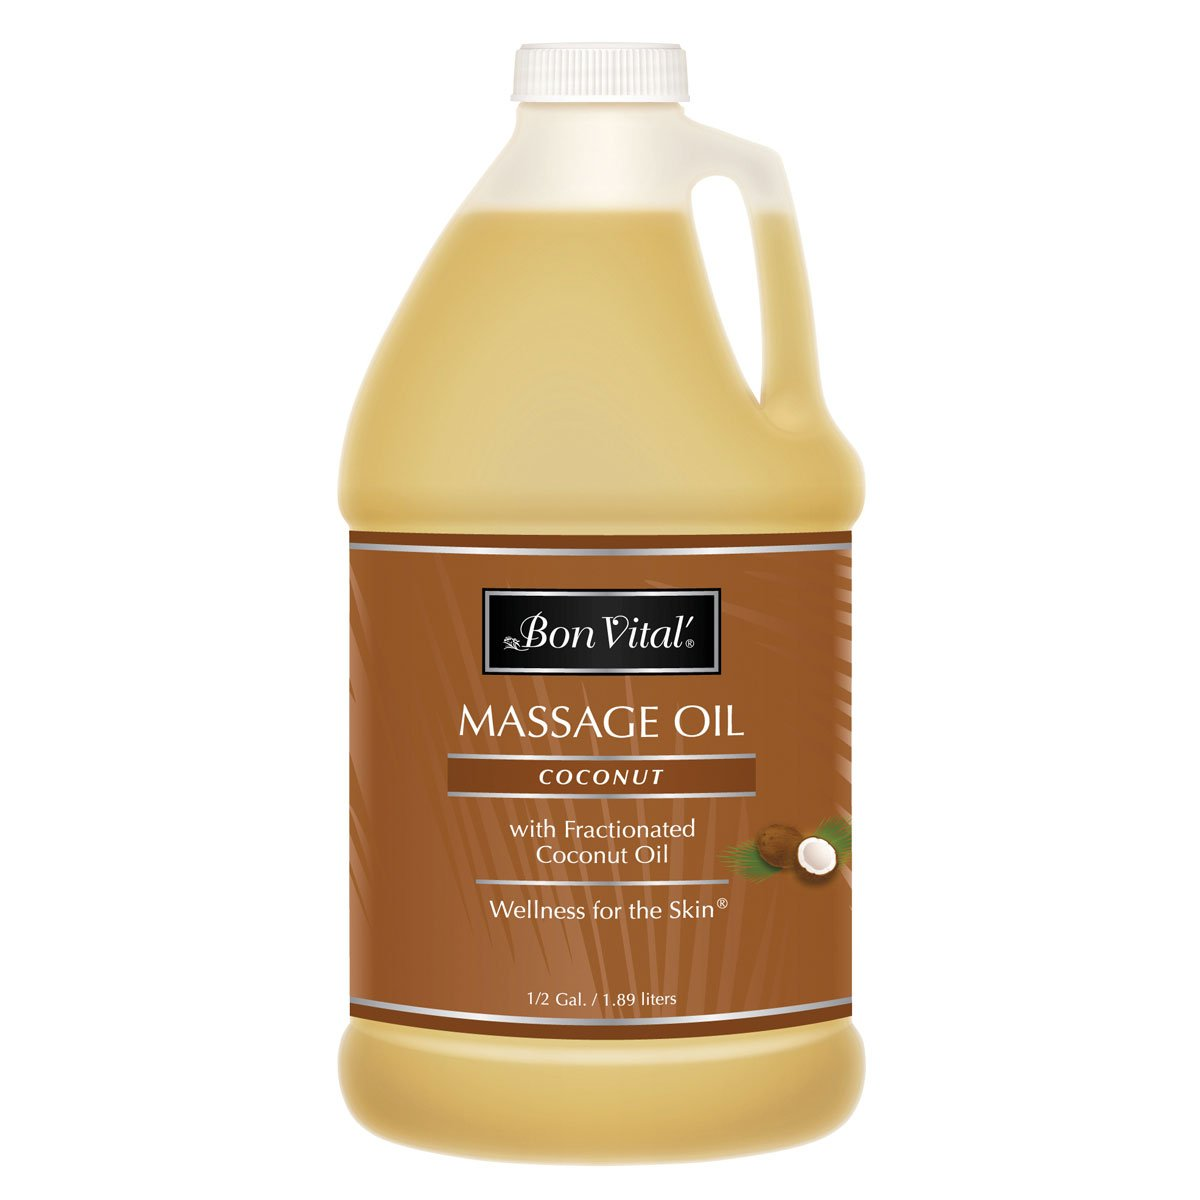 Bon Vital' Coconut Massage Oil Made with 100% Pure Fractionated Coconut Oil to Repair Dry Skin, Used by Massage Therapists and at-Home Use for Therapeutic Massages and Relaxation, 1/2 Gallon Bottle by Bon Vital